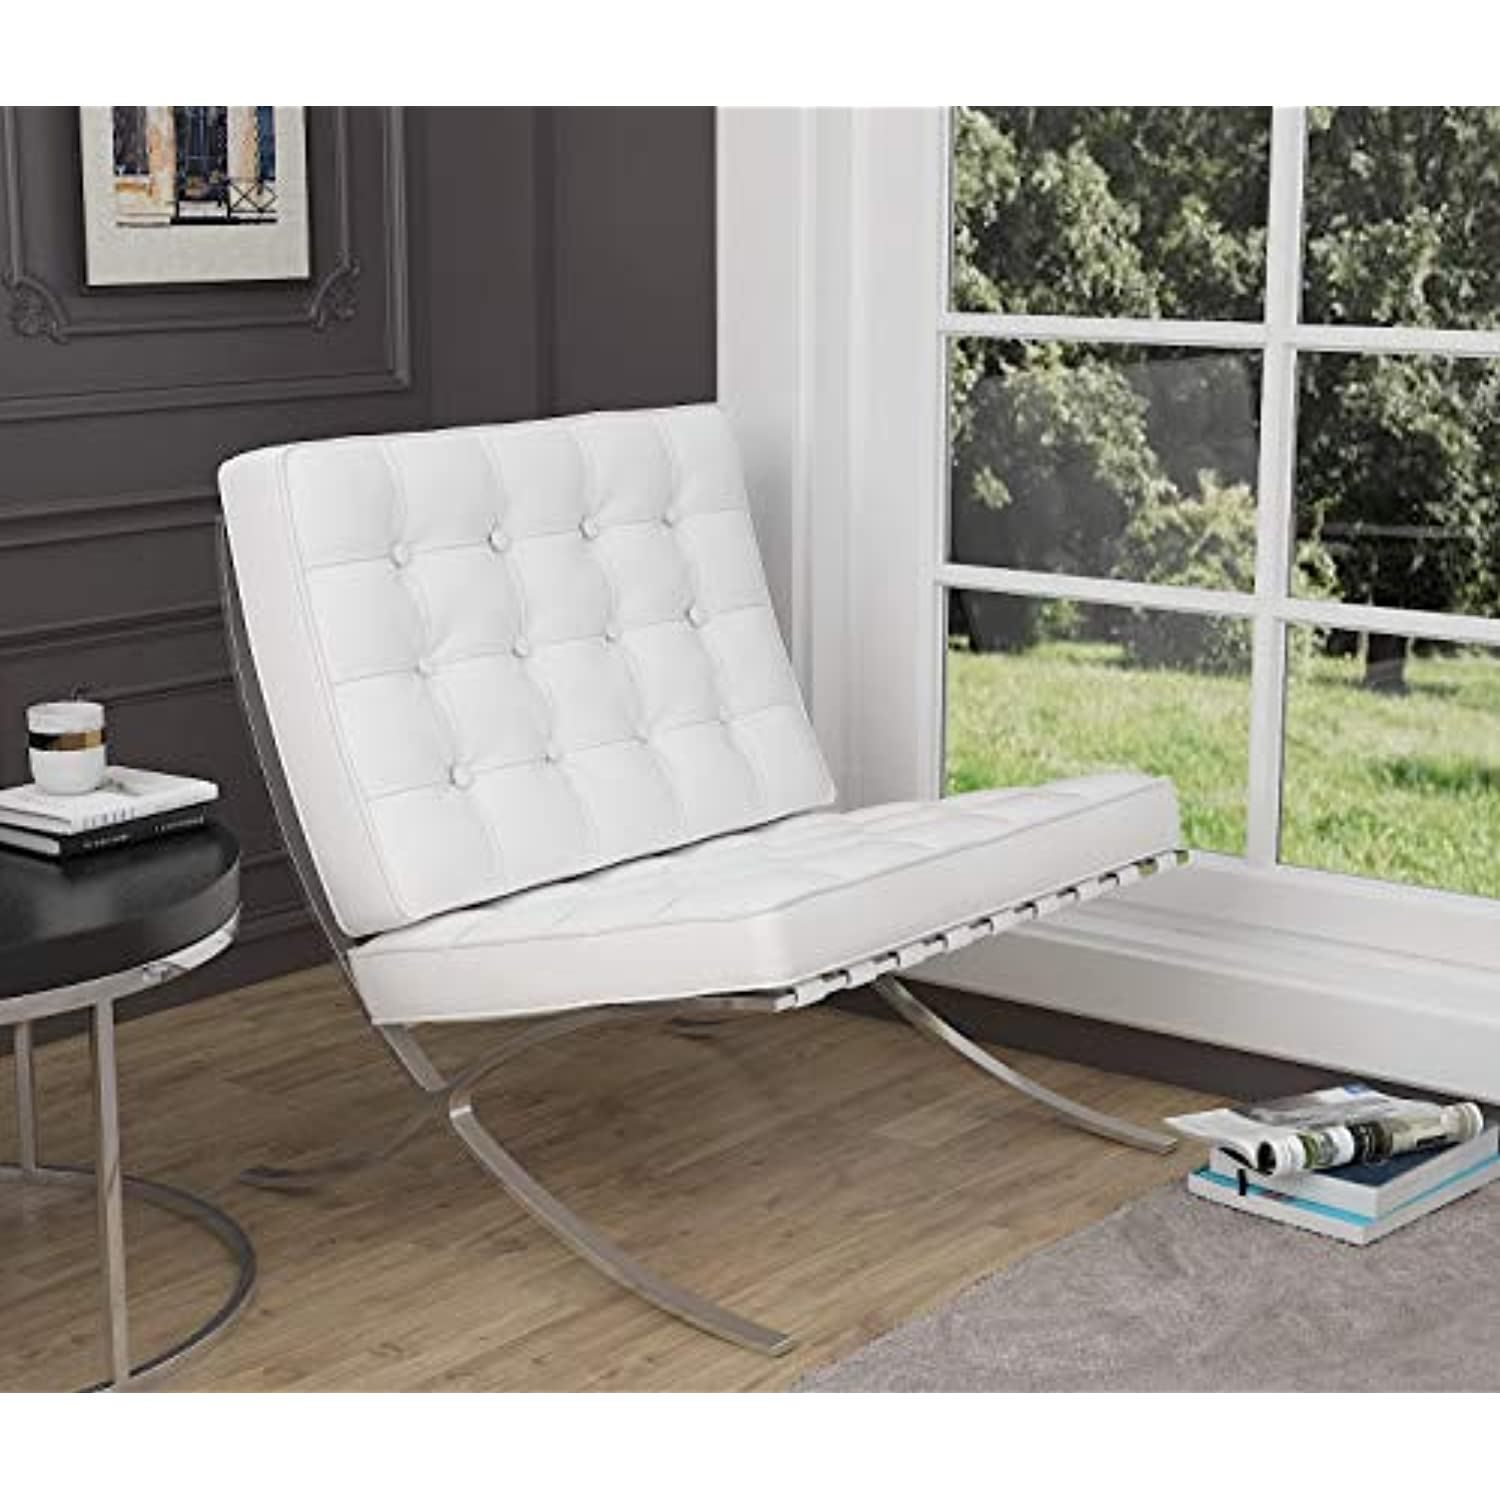 Fulol Modern Atrium Accent Chair Lounge Chair for Living Room Bedroom, Leather Seat and Stainless Steel Frame (White)